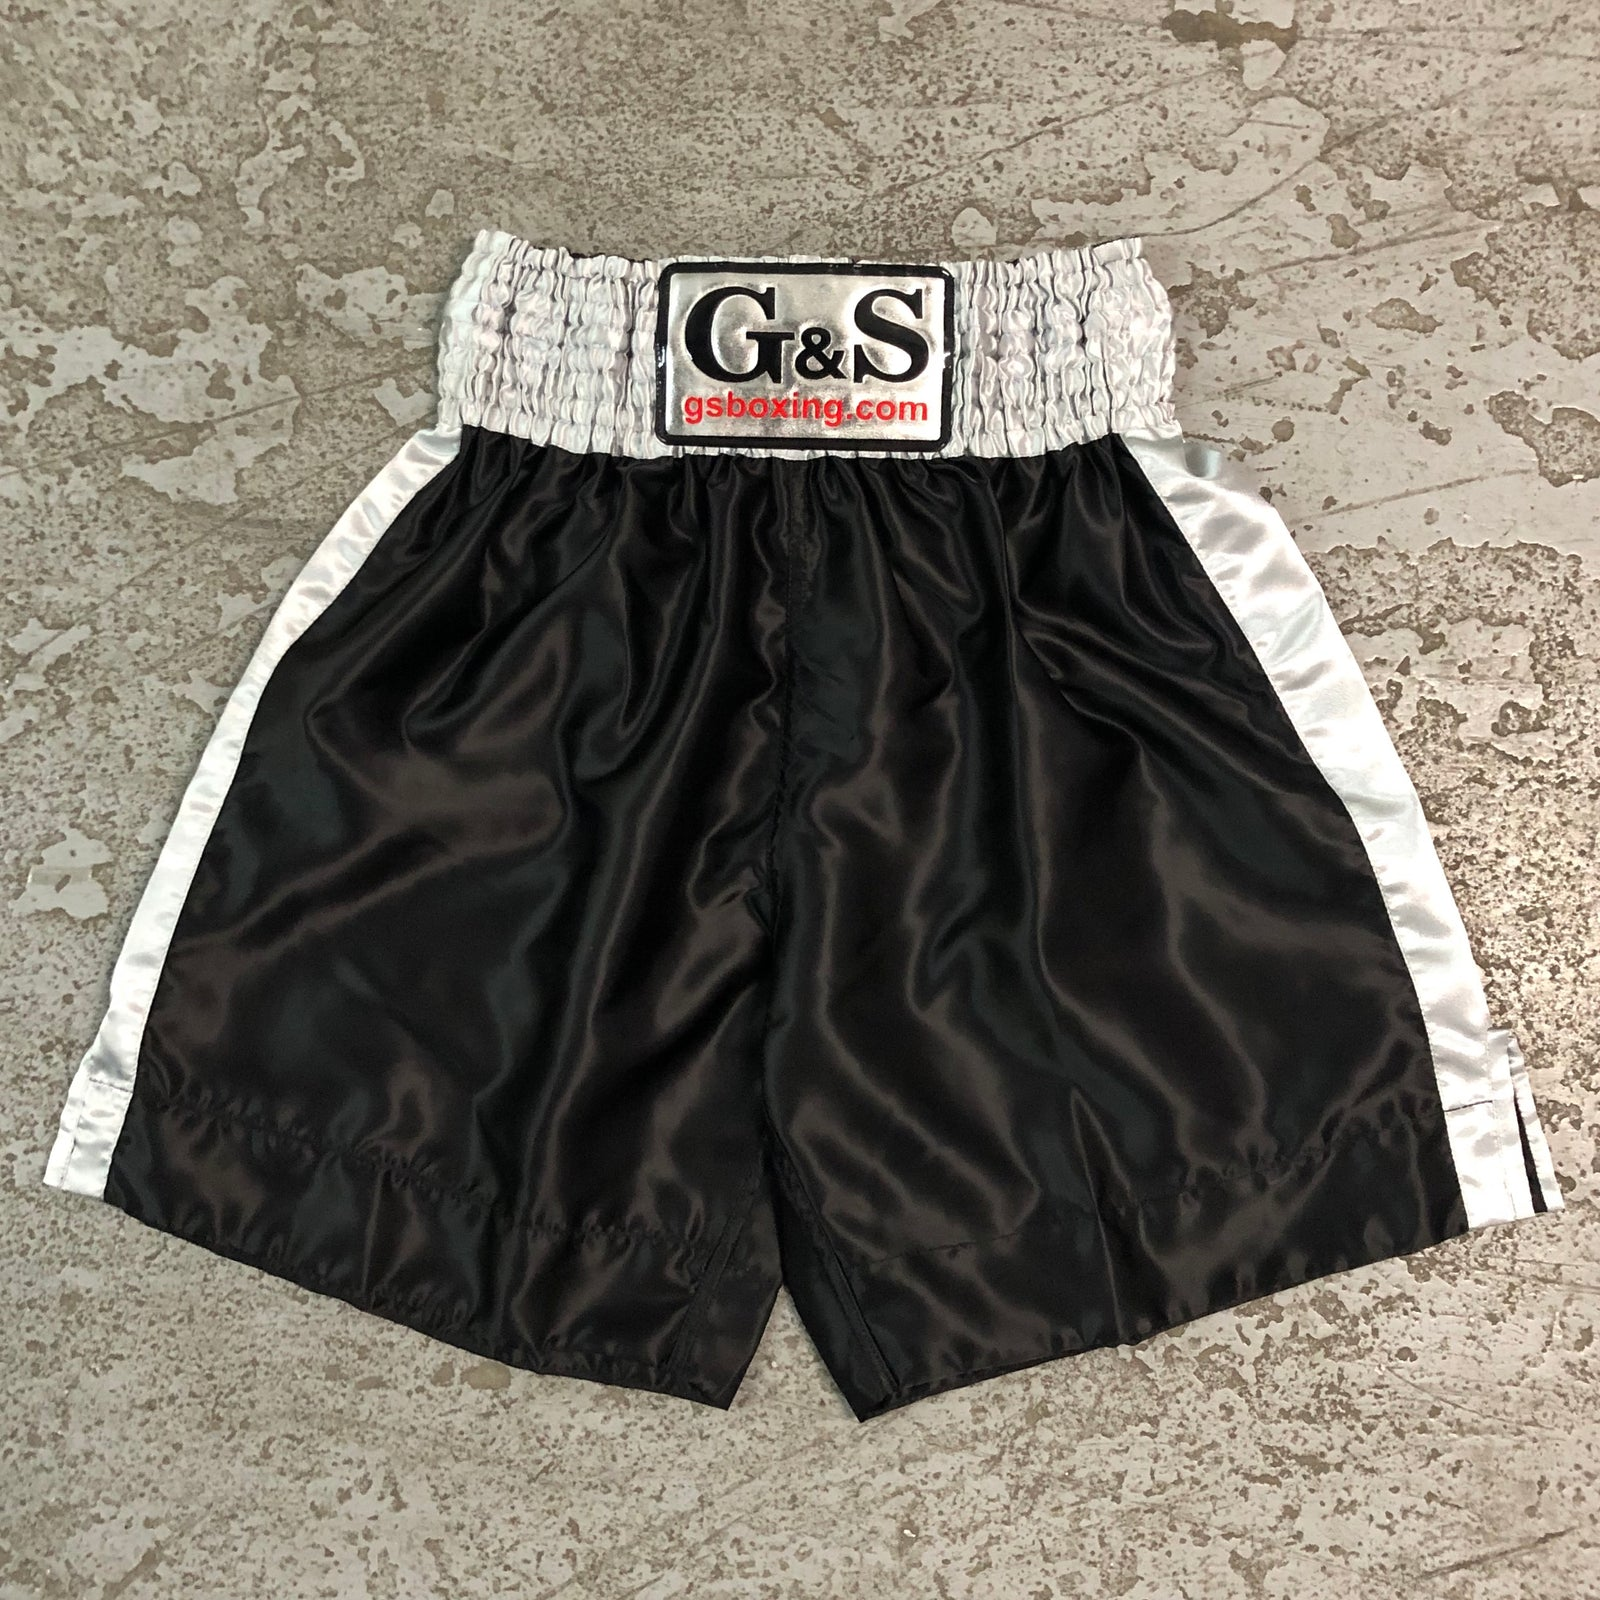 Throwback Fight Trunks - Black with Grey Waistband